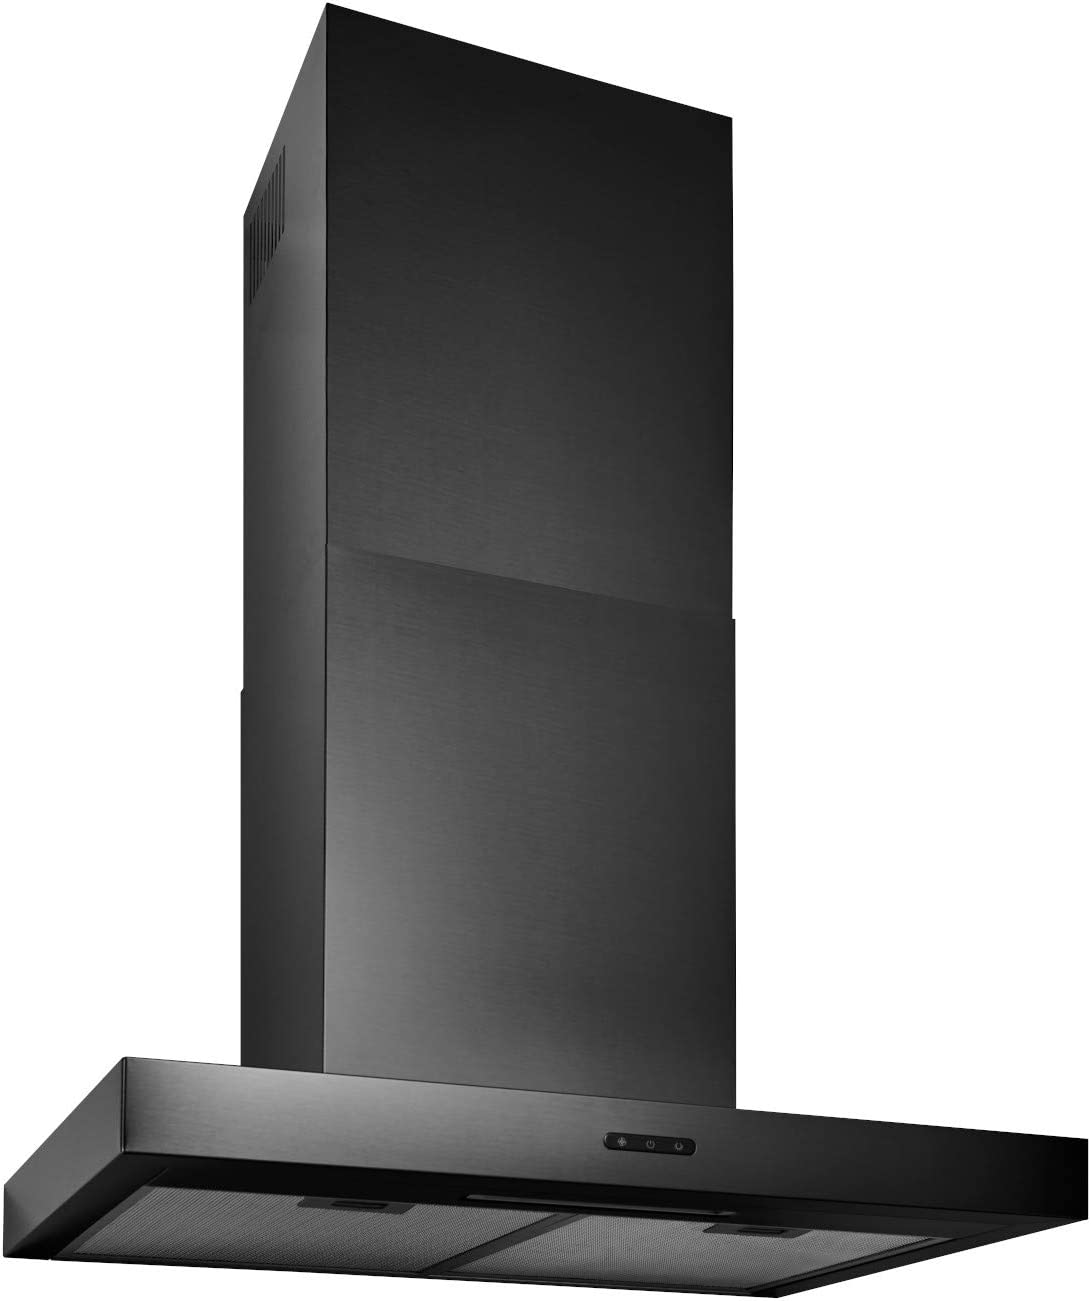 Broan-NuTone EW4336BLS Wall-Mount Black Stainless Steel Chimney Insert with LED Light, 400 CFM, 36-Inch Range Hood